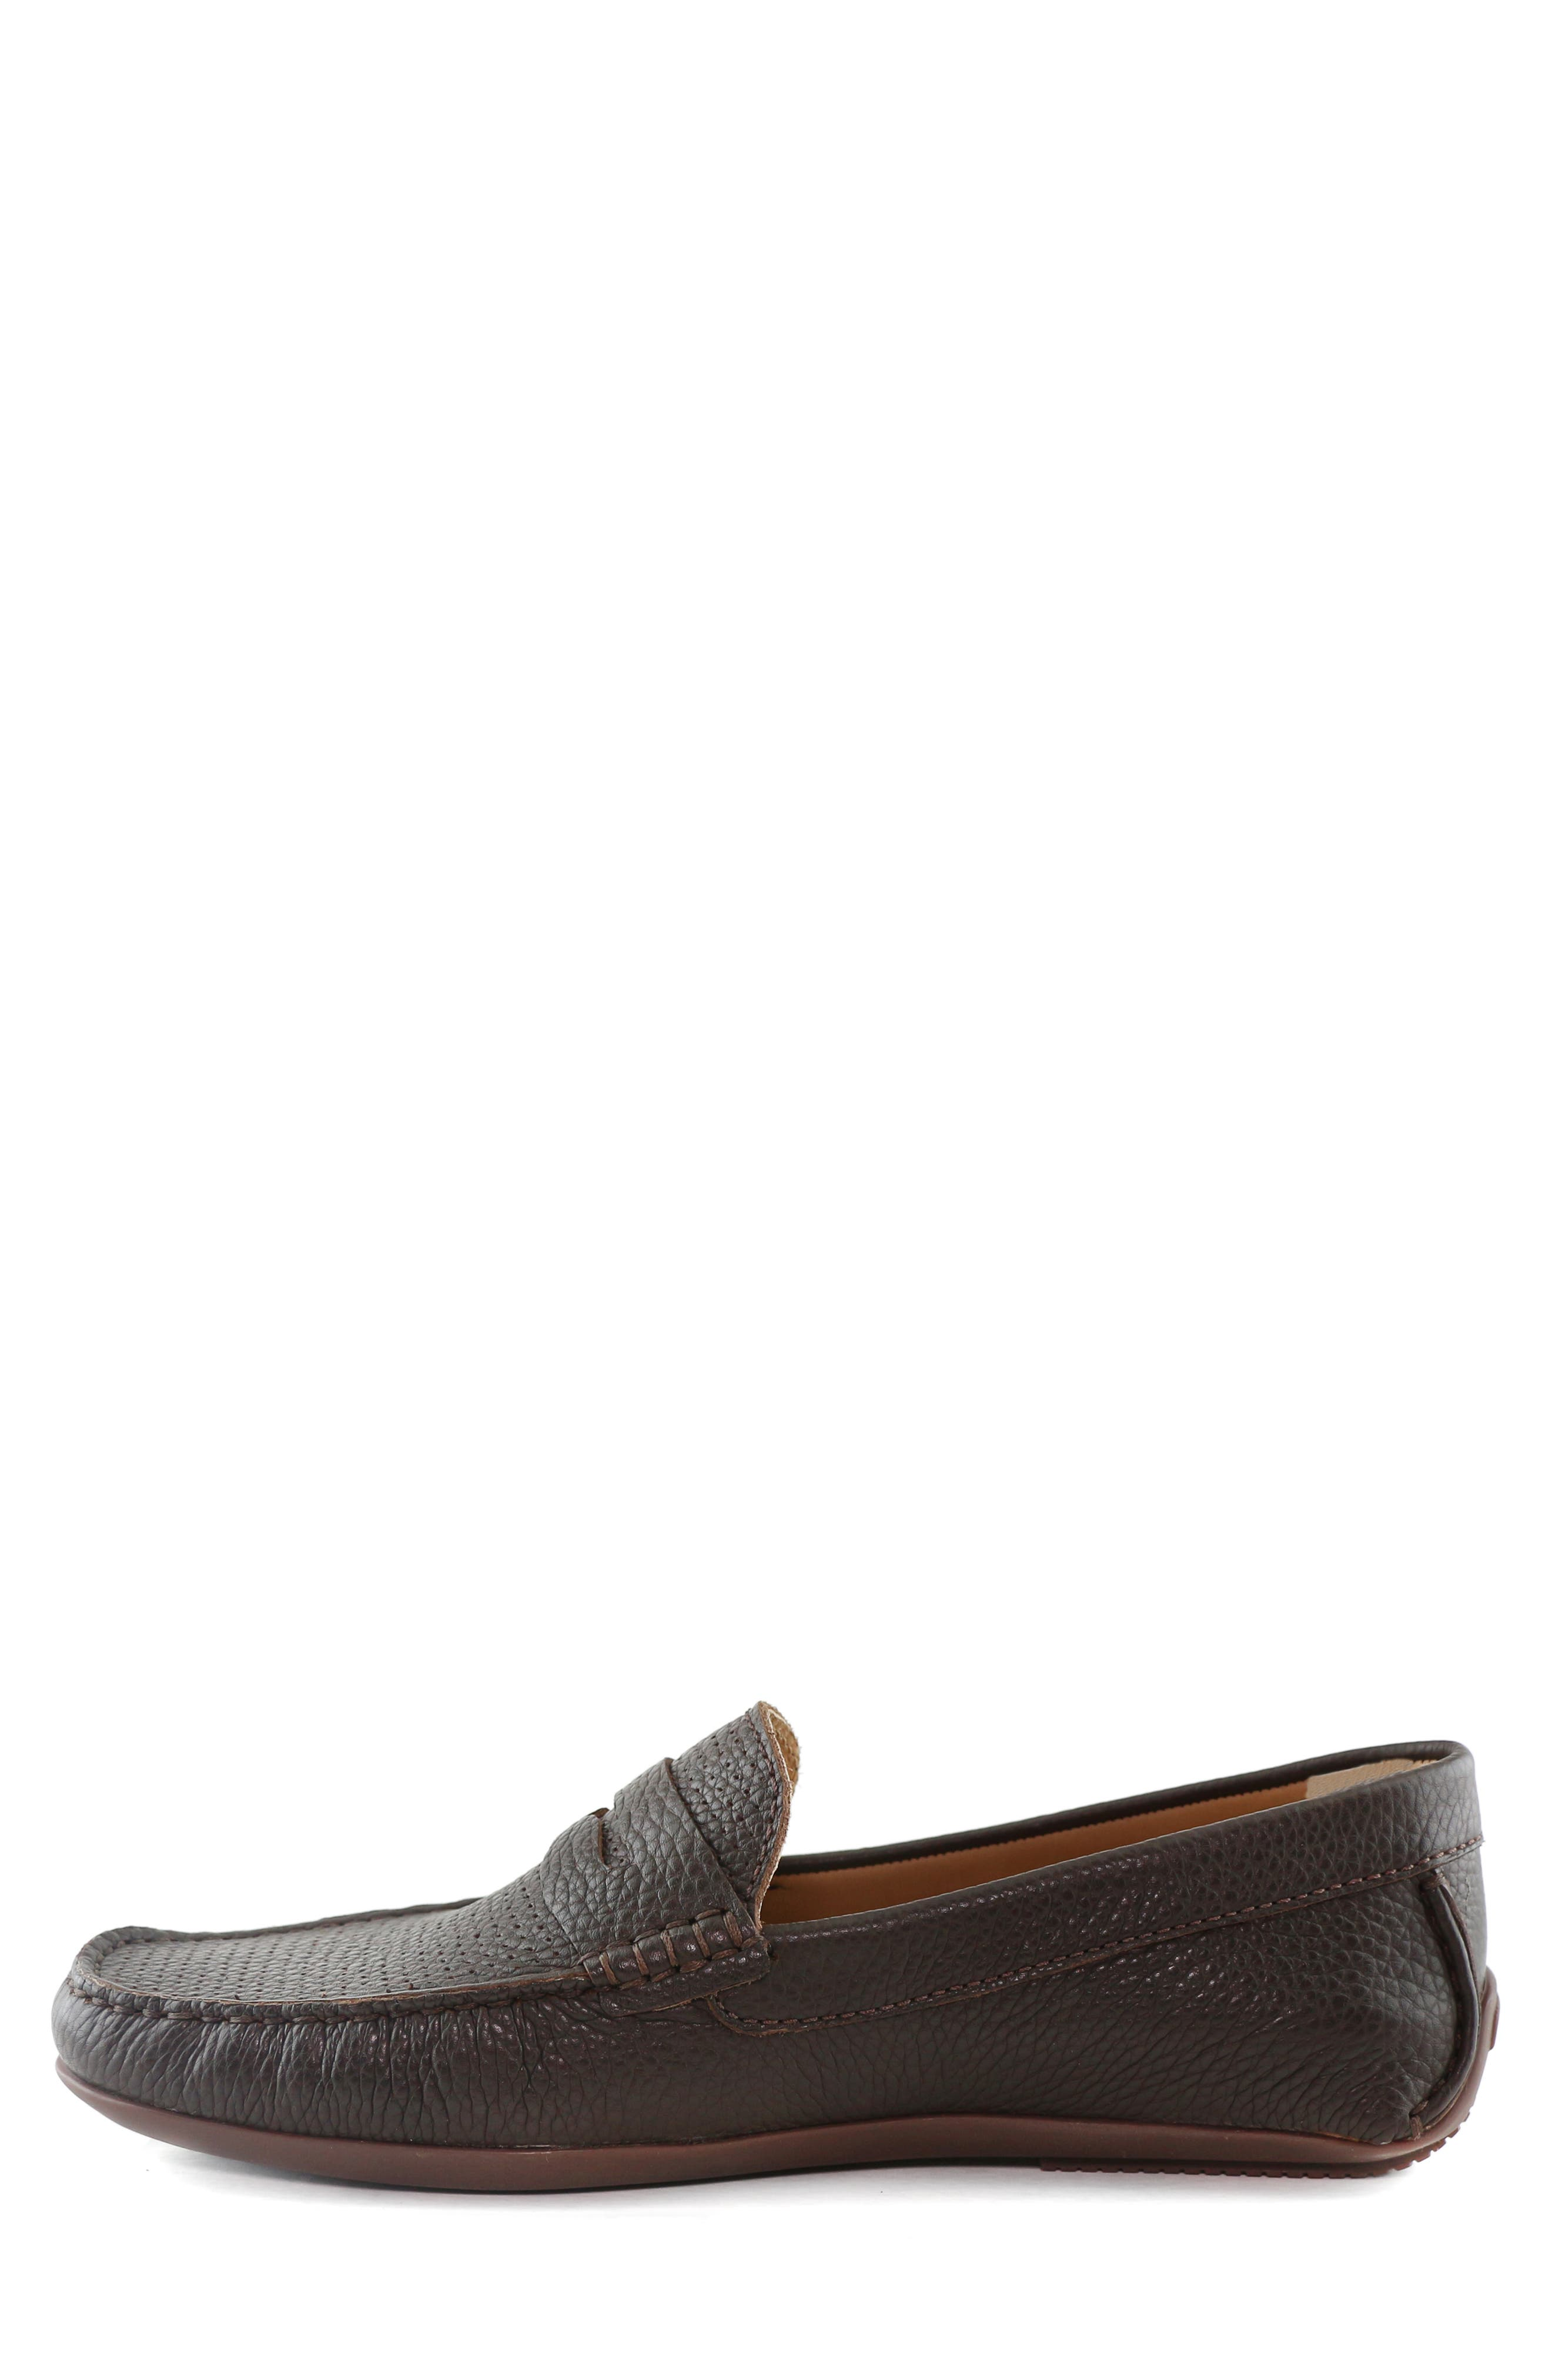 MARC JOSEPH NEW YORK, 'Union Street' Penny Loafer, Alternate thumbnail 9, color, BROWN GRAINY LEATHER